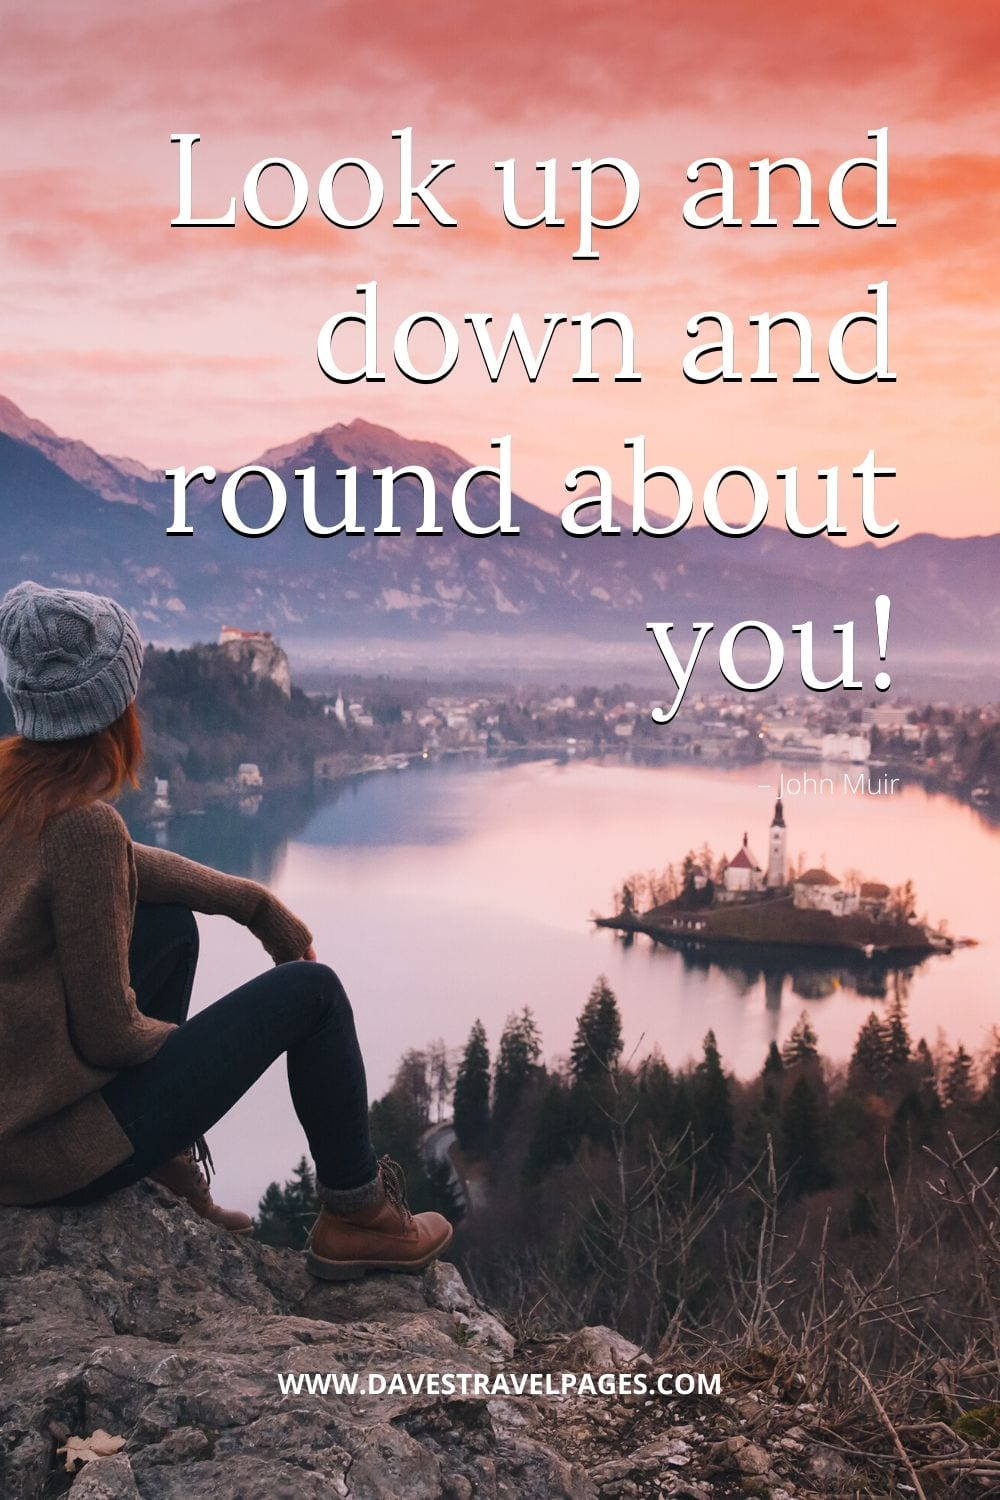 """""""Look up and down and round about you.!"""" – John Muir"""